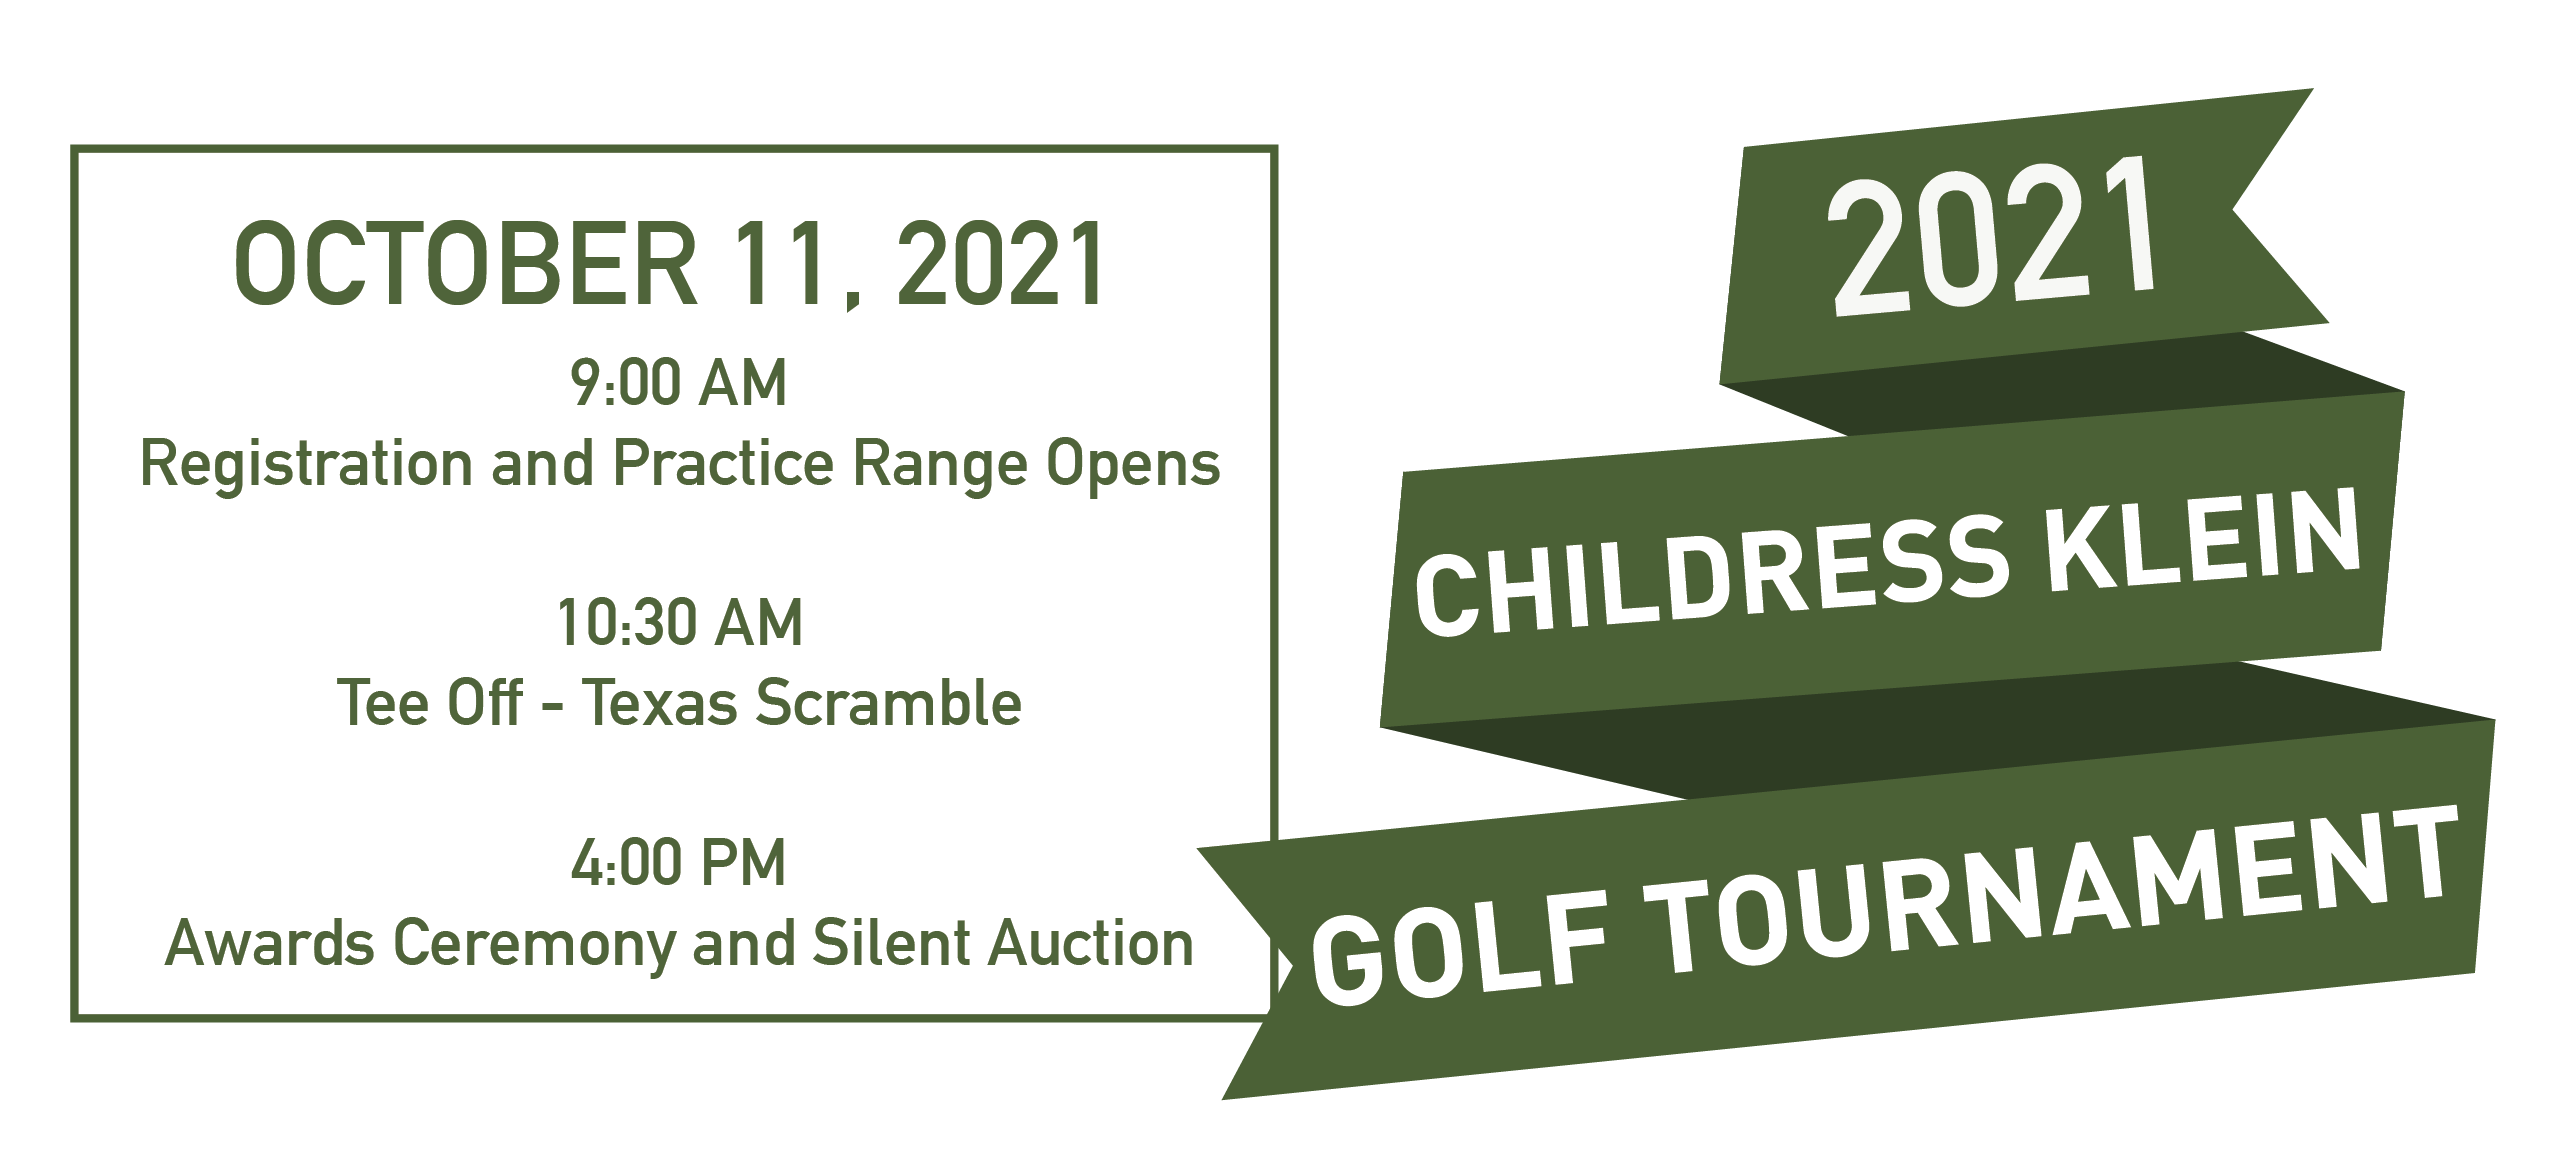 2021 umar golf tournament october 11th at providence country club